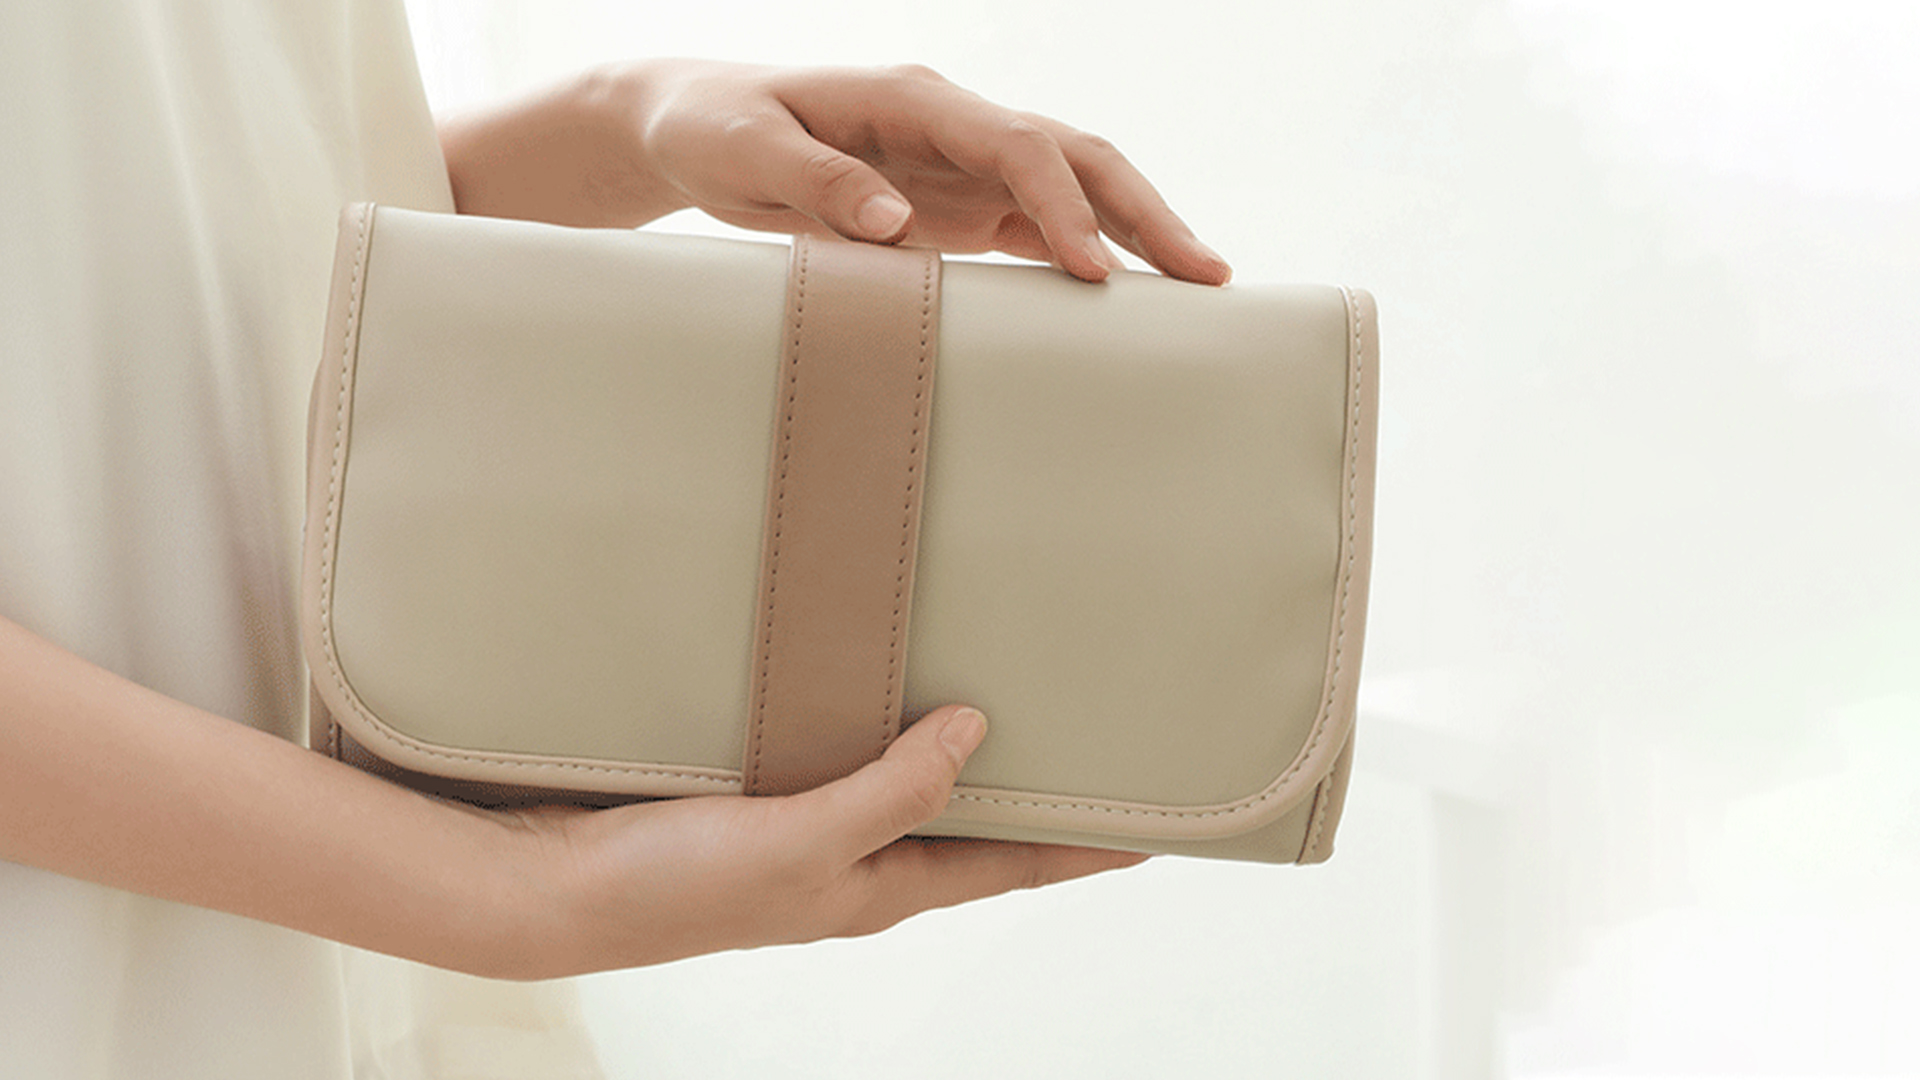 Mino Cosmetic Storage Bag 5 - Sneapy